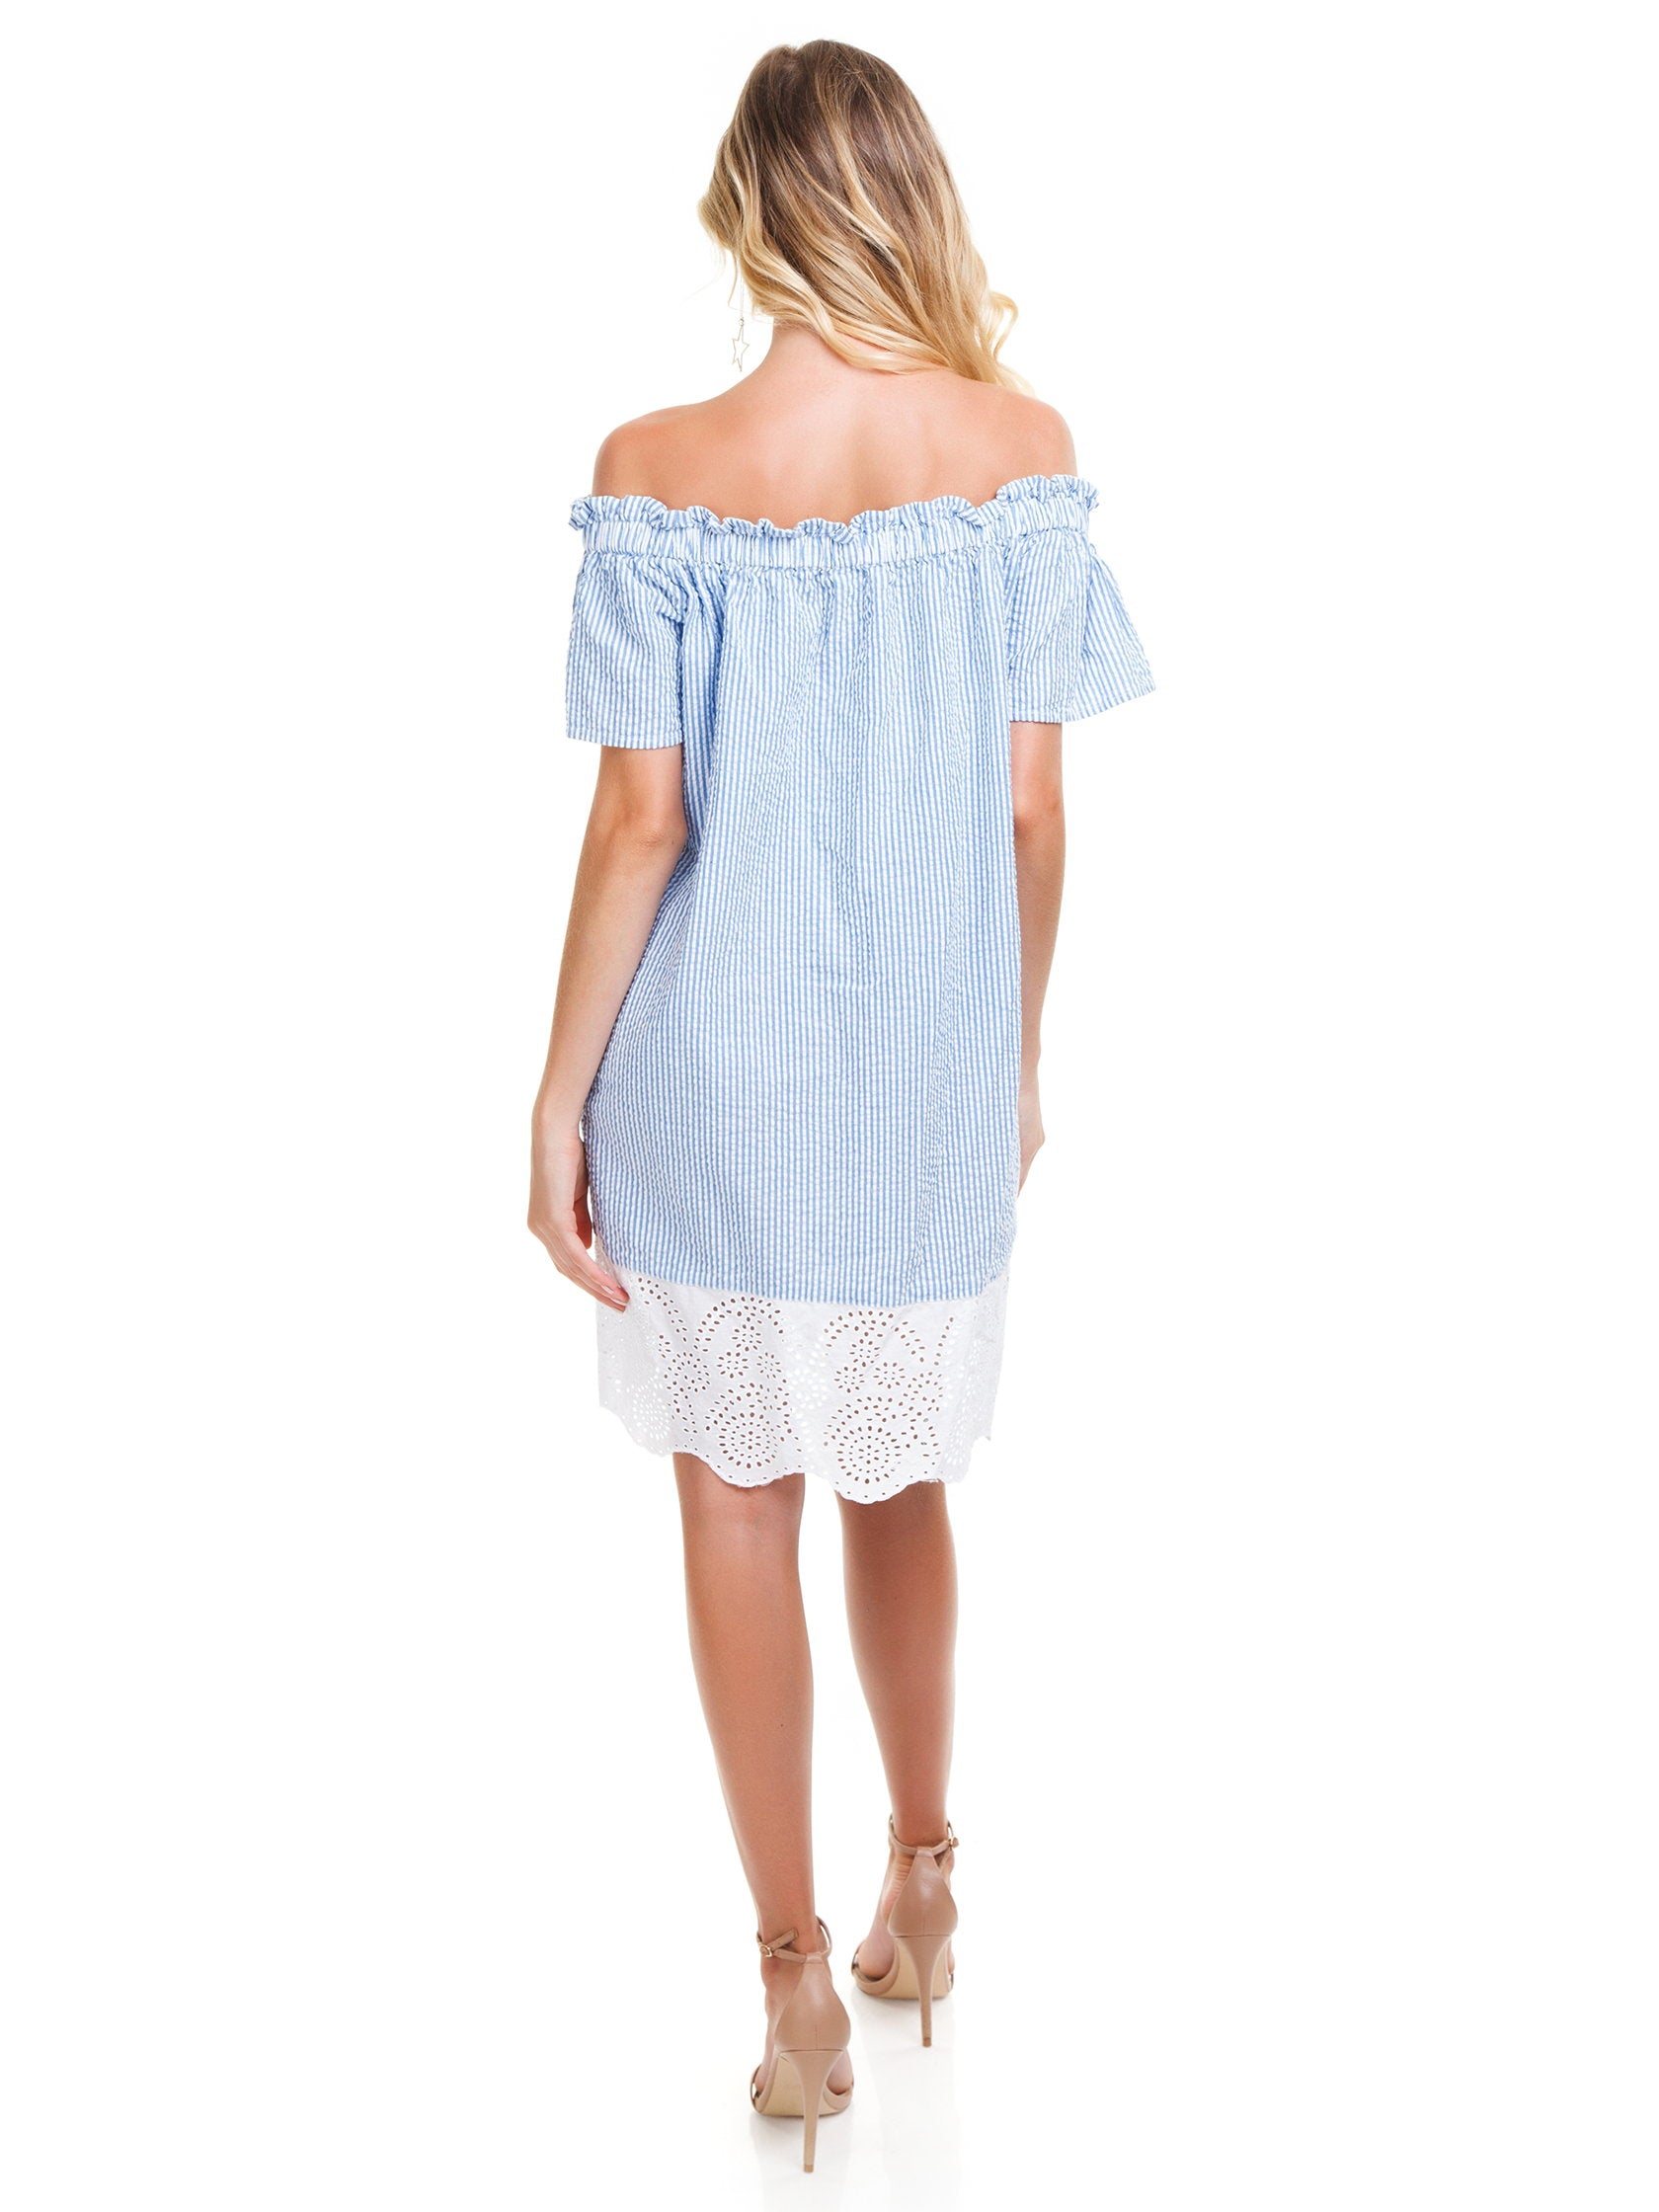 Women wearing a dress rental from French Connection called Belle Off-the-shoulder Dress